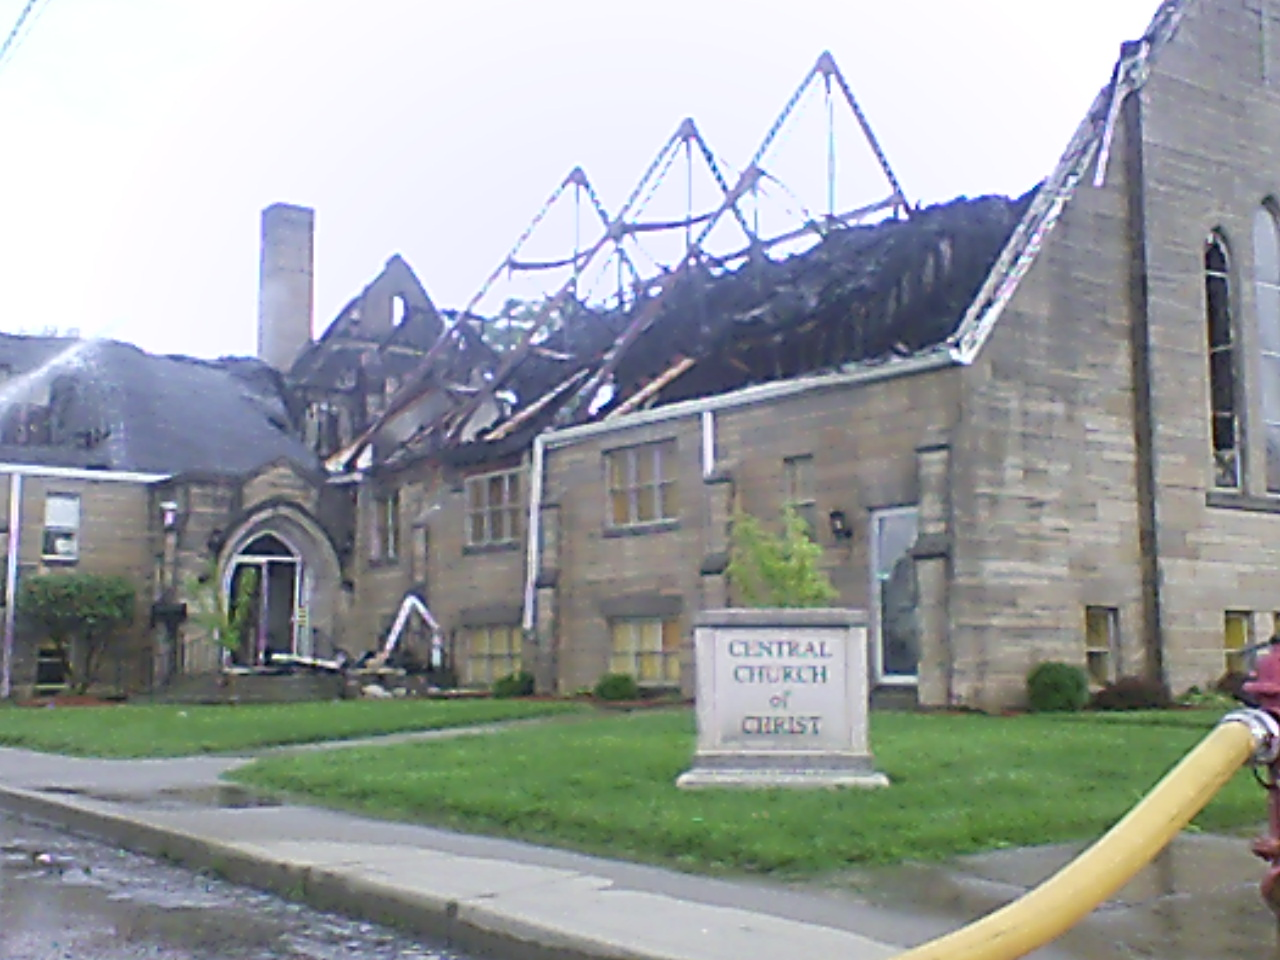 Central Curch Of Christ - Fire 012.jpg